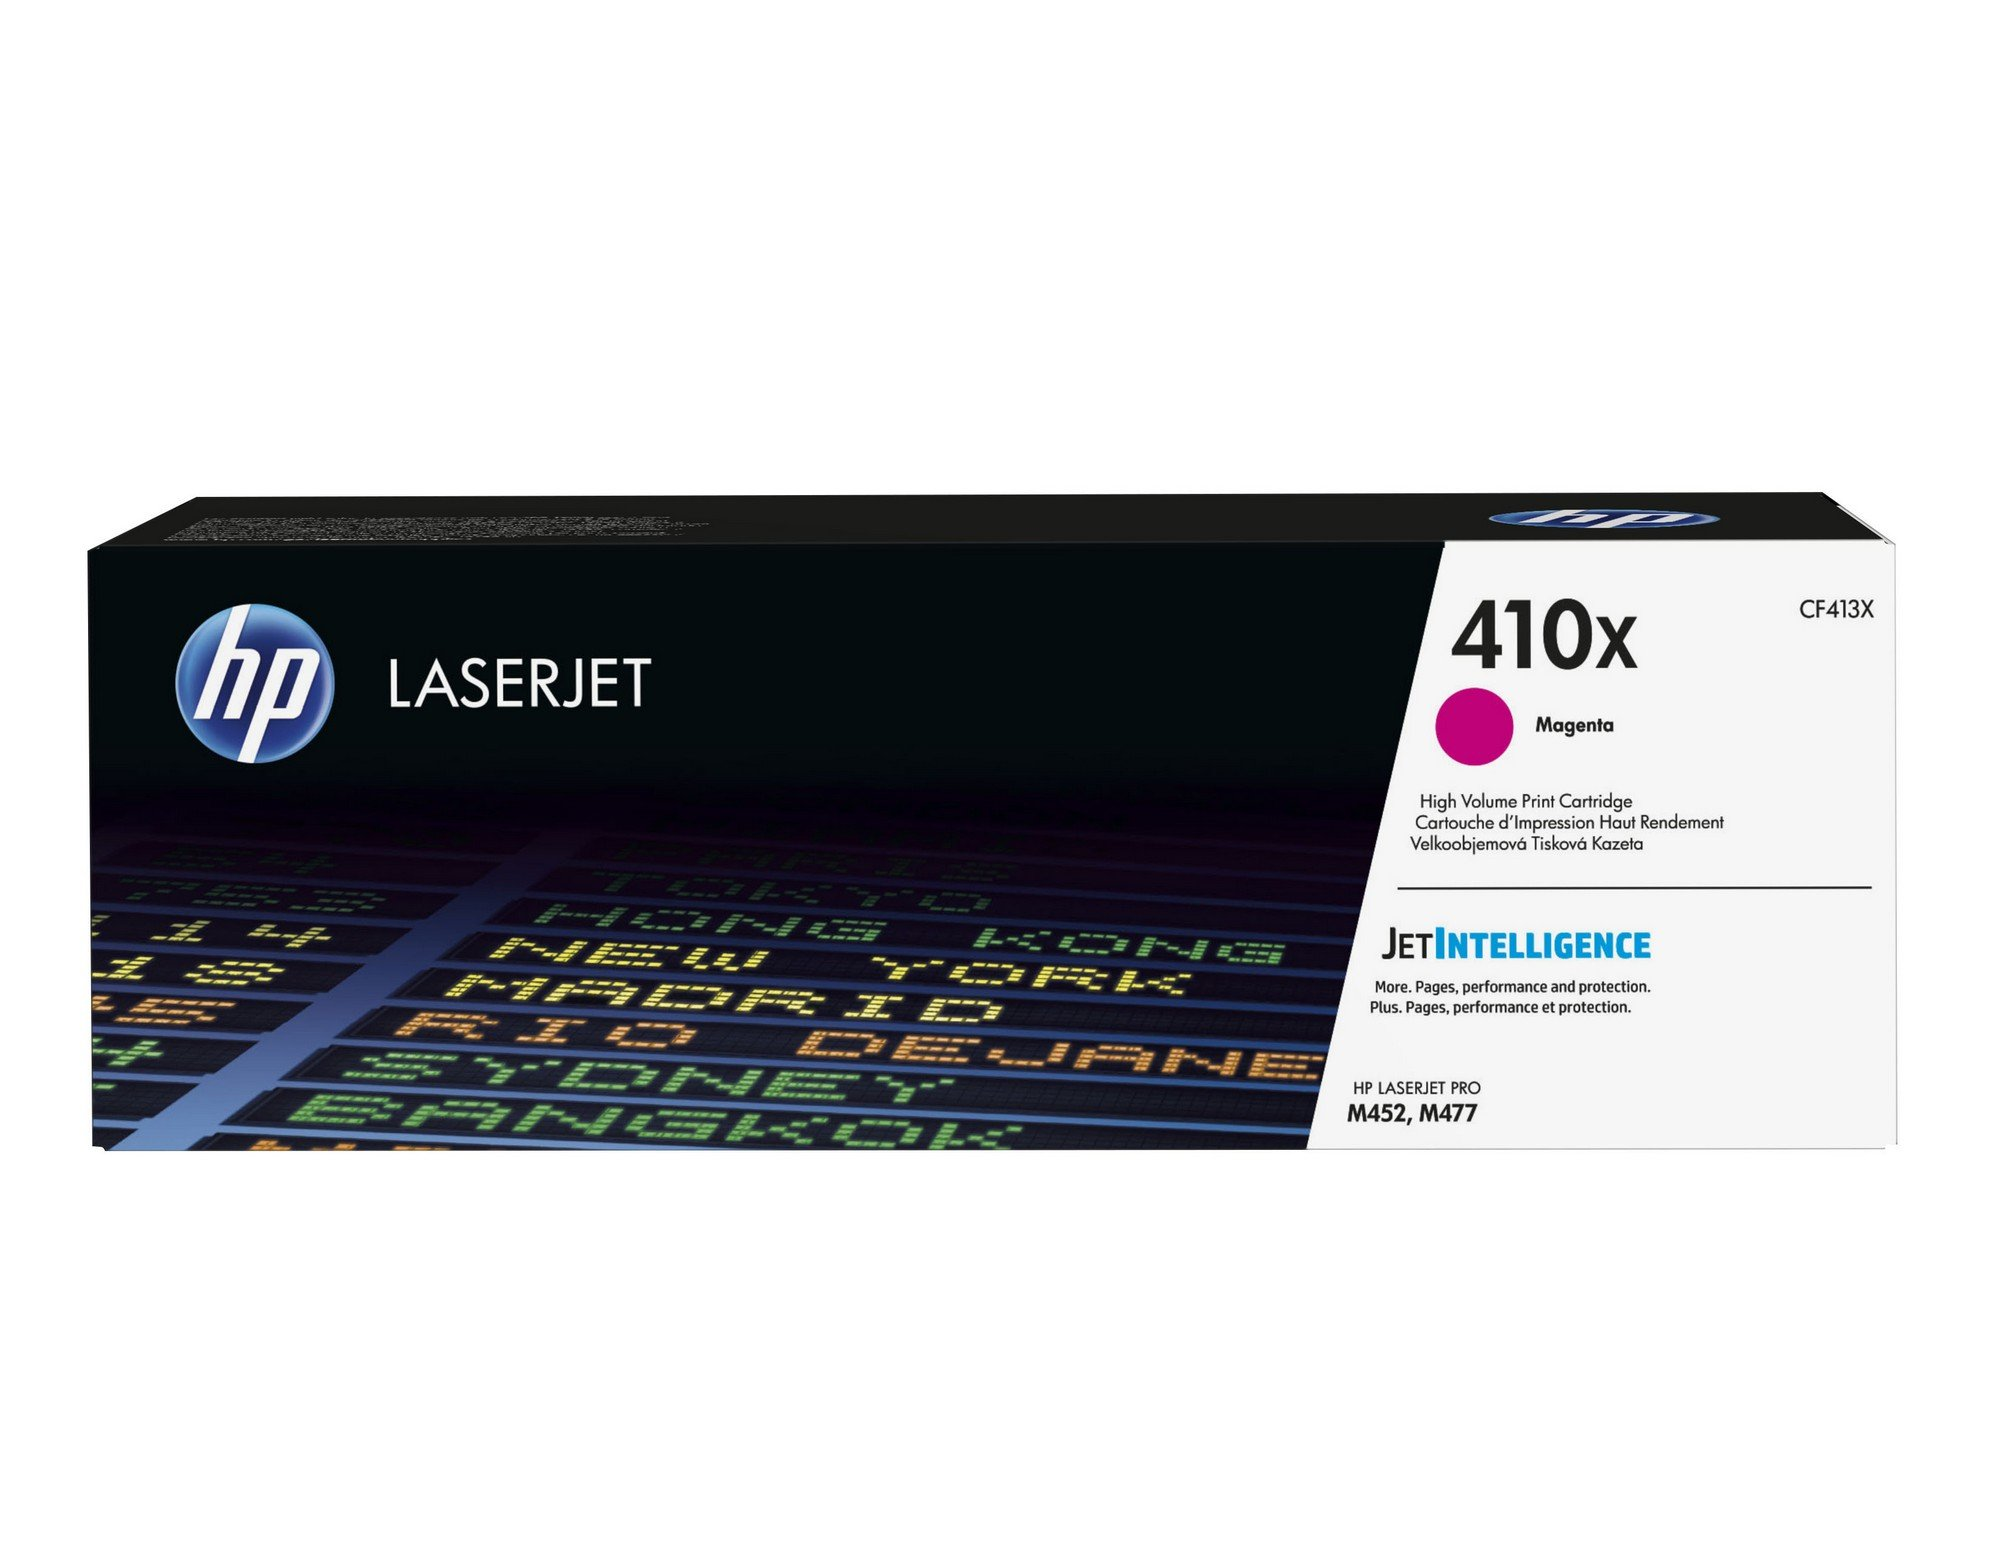 HP 410X (CF413X) Toner Cartridge, Magenta High Yield for HP Color LaserJet Pro M452dn, M452dw, M452nw, MFP M377dw, MFP M477fdn, MFP M477fdw, MFP M477fnw by HP